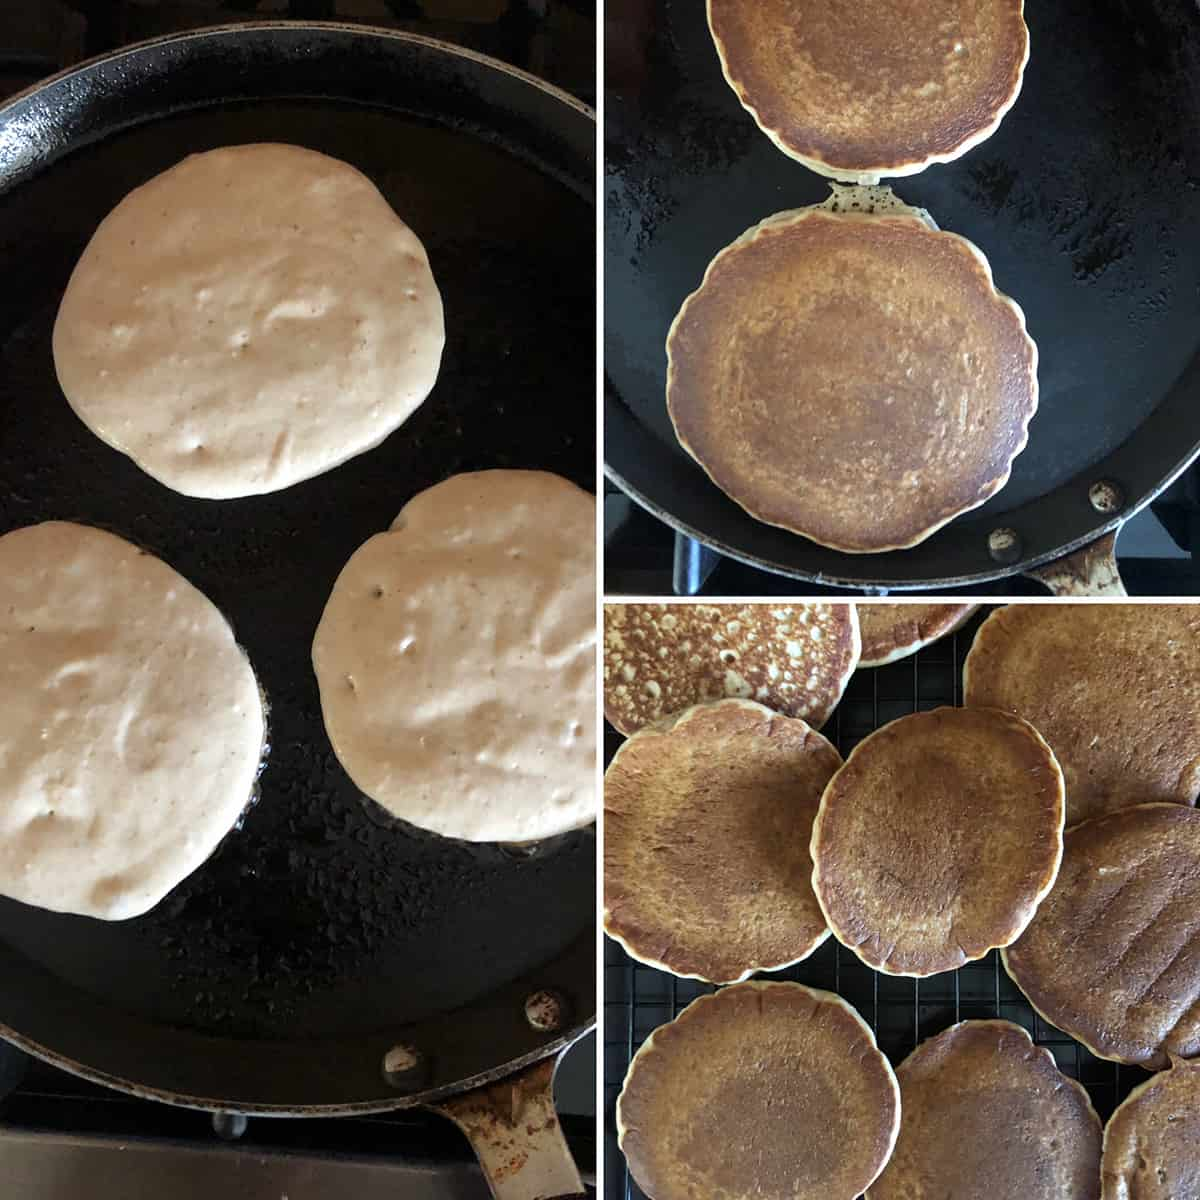 Side by side photos of making pancakes